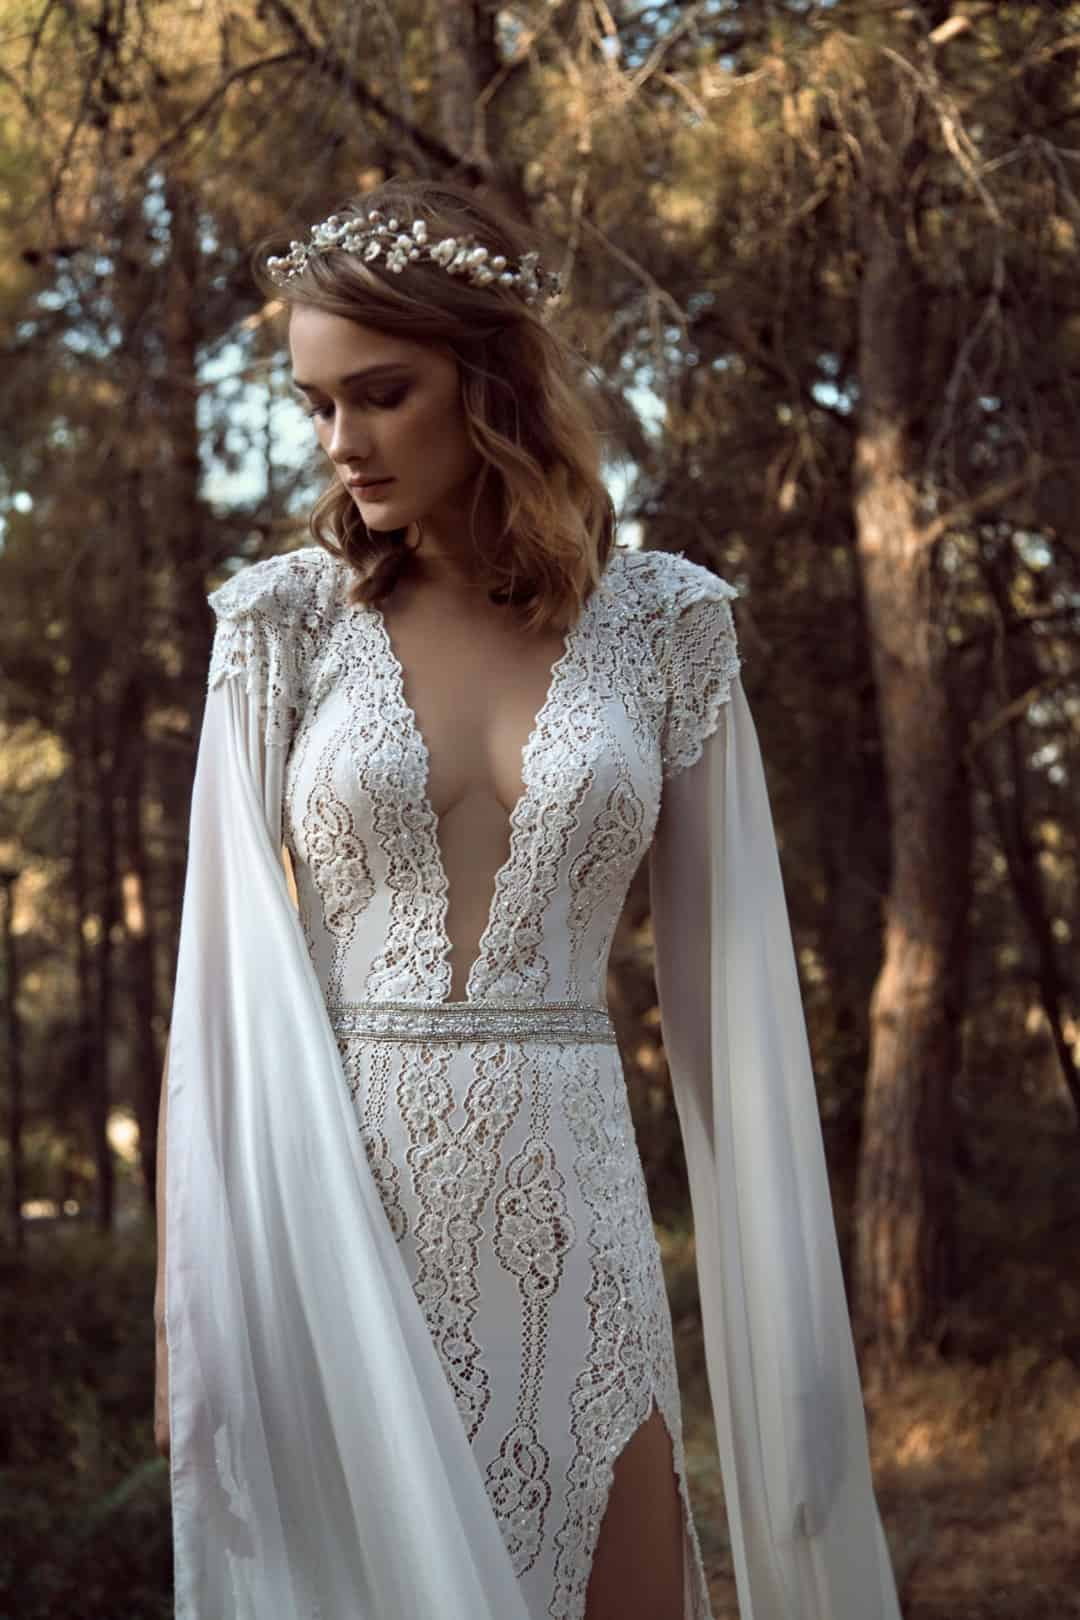 Haute Couture Wedding Dresses - 906_front_mediumshot